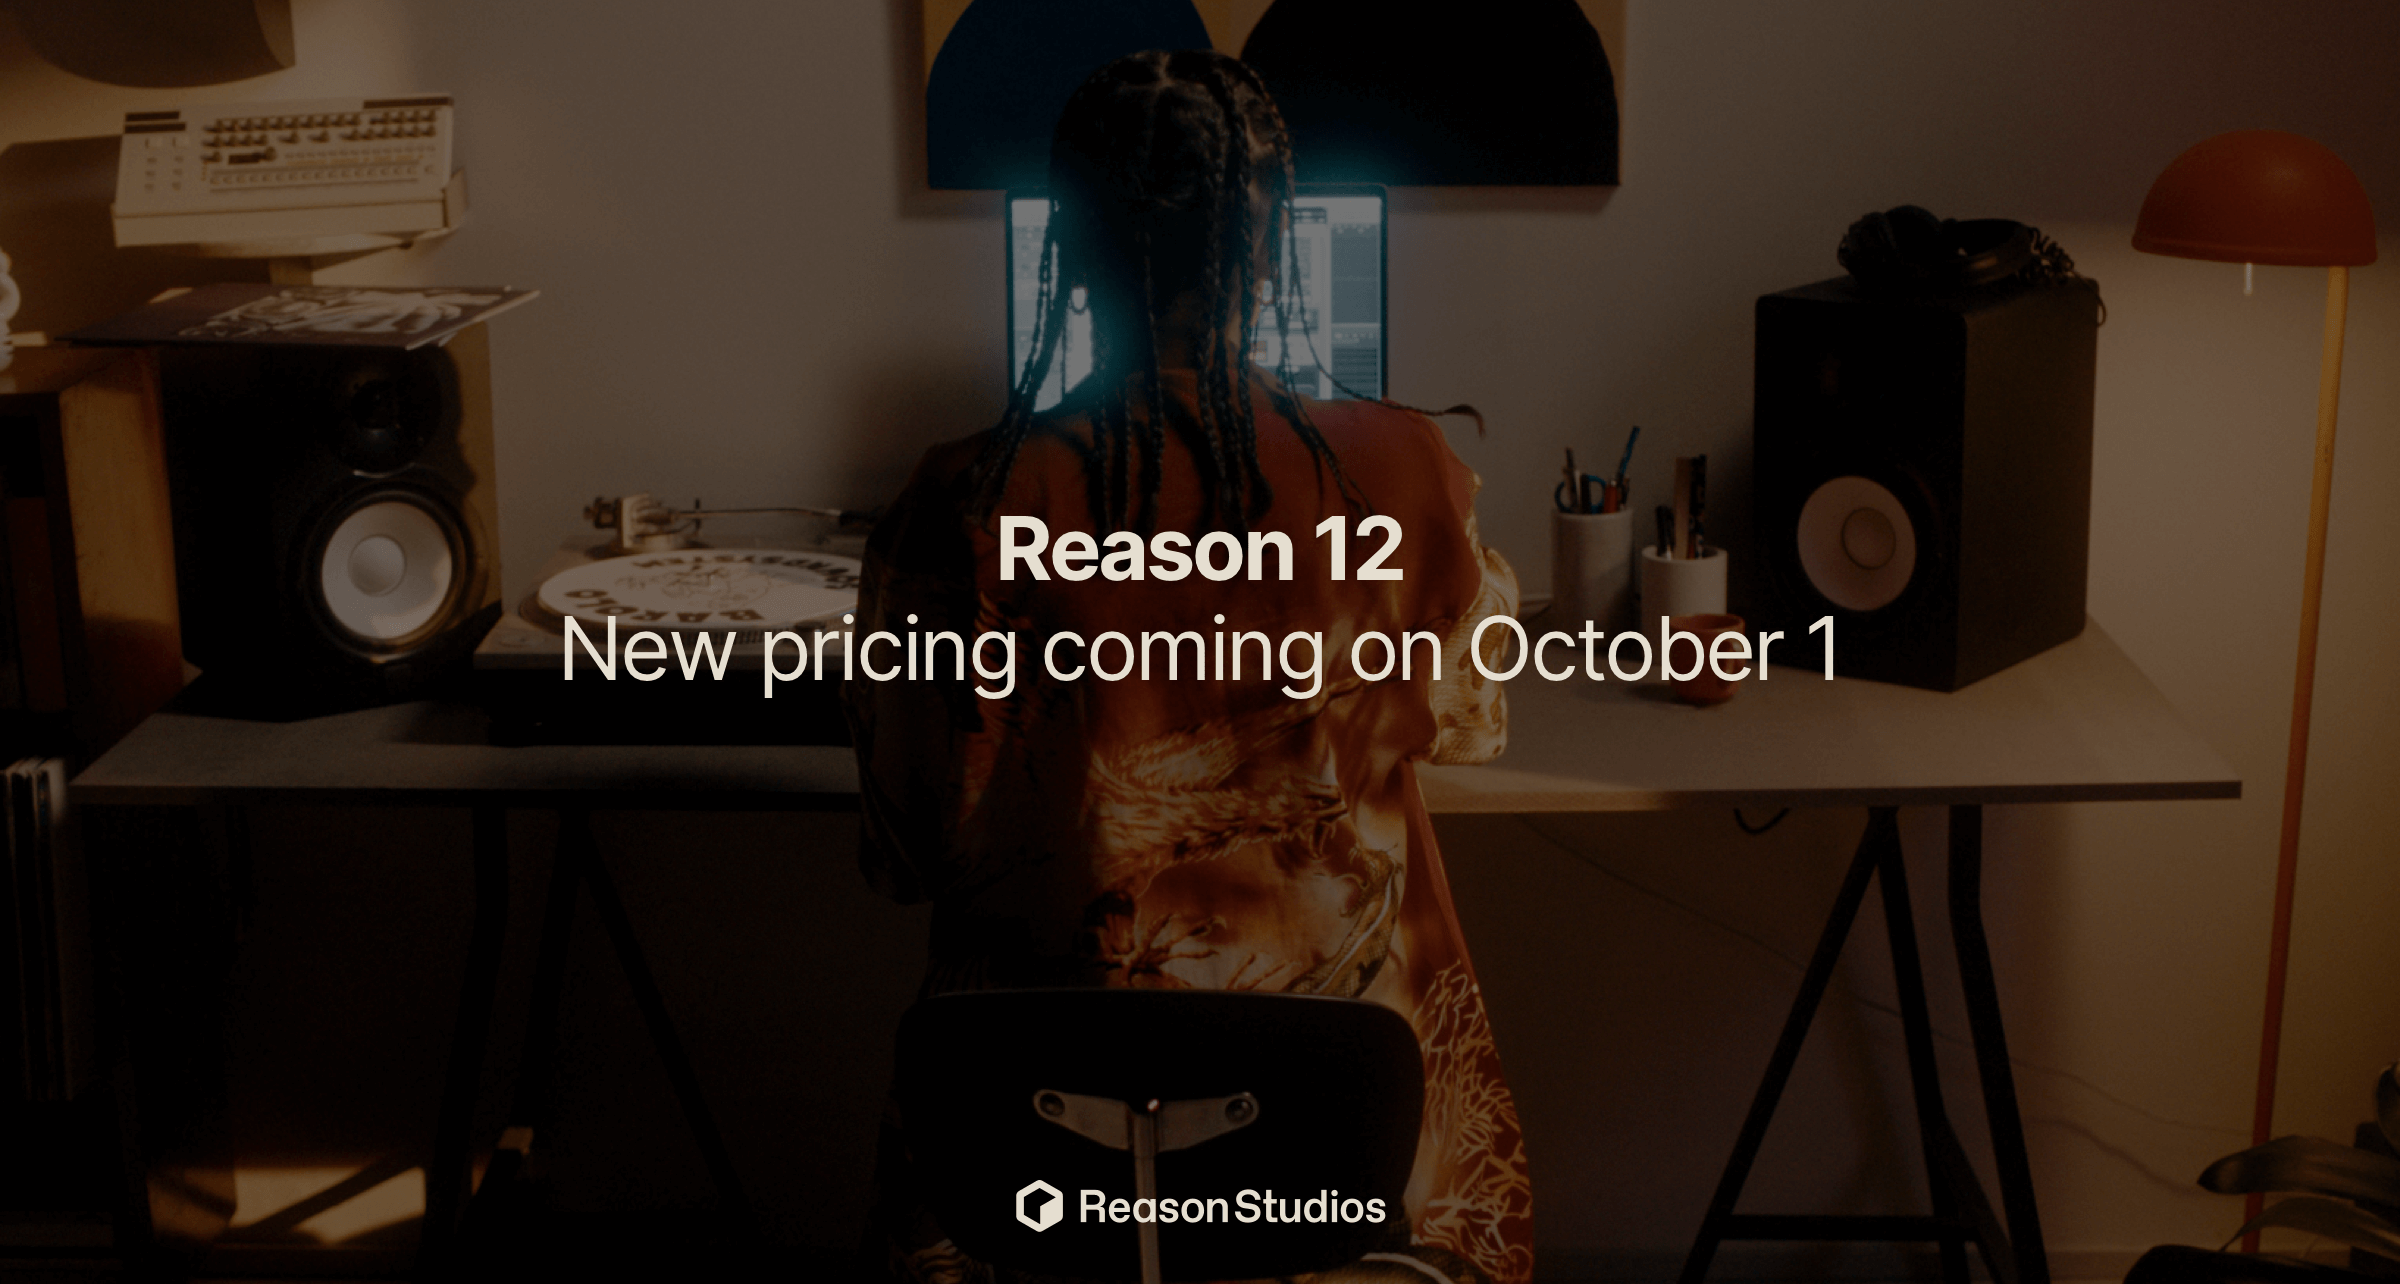 Reason 12: New pricing coming on October 1